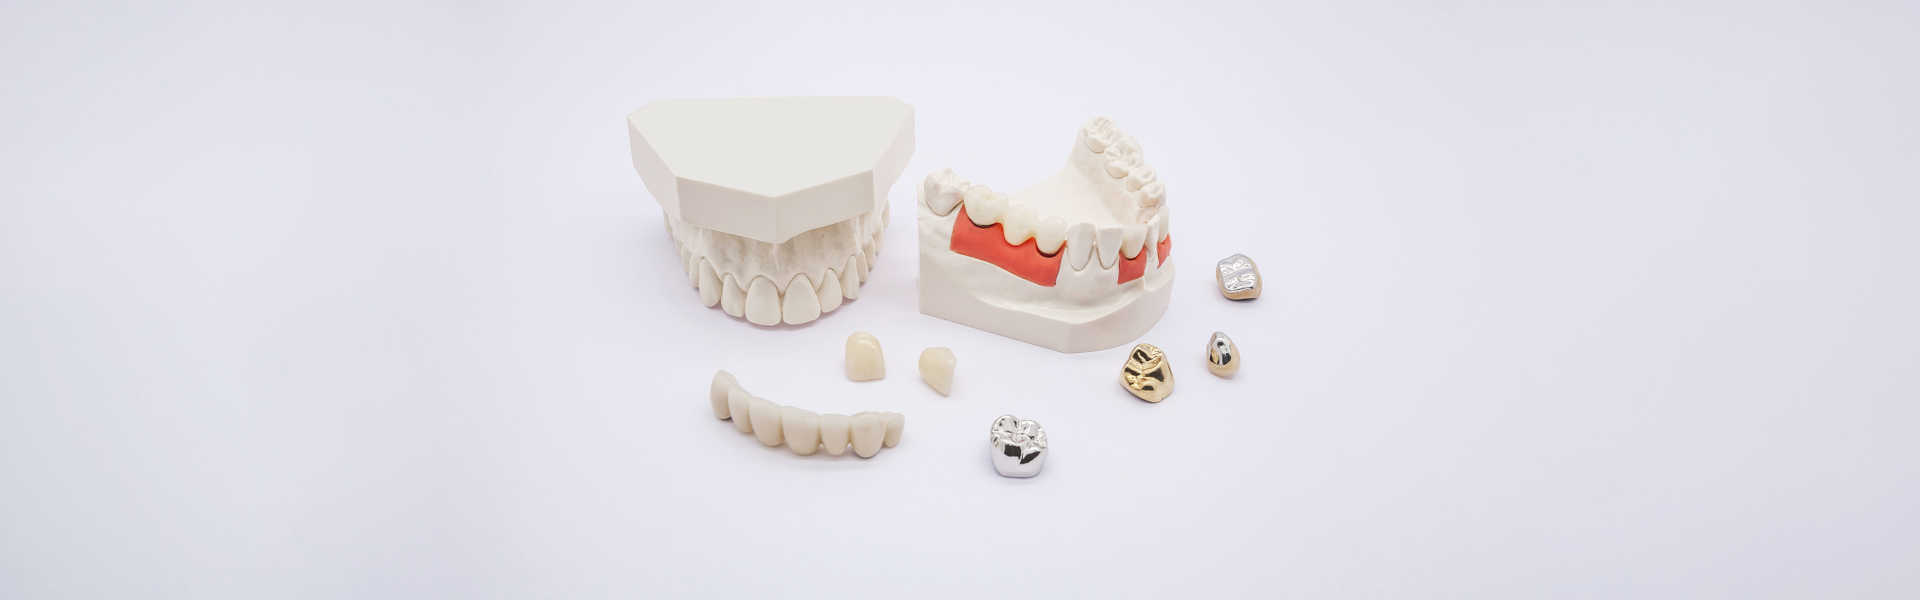 Porcelain or Zirconia- Which Material is Right for You?